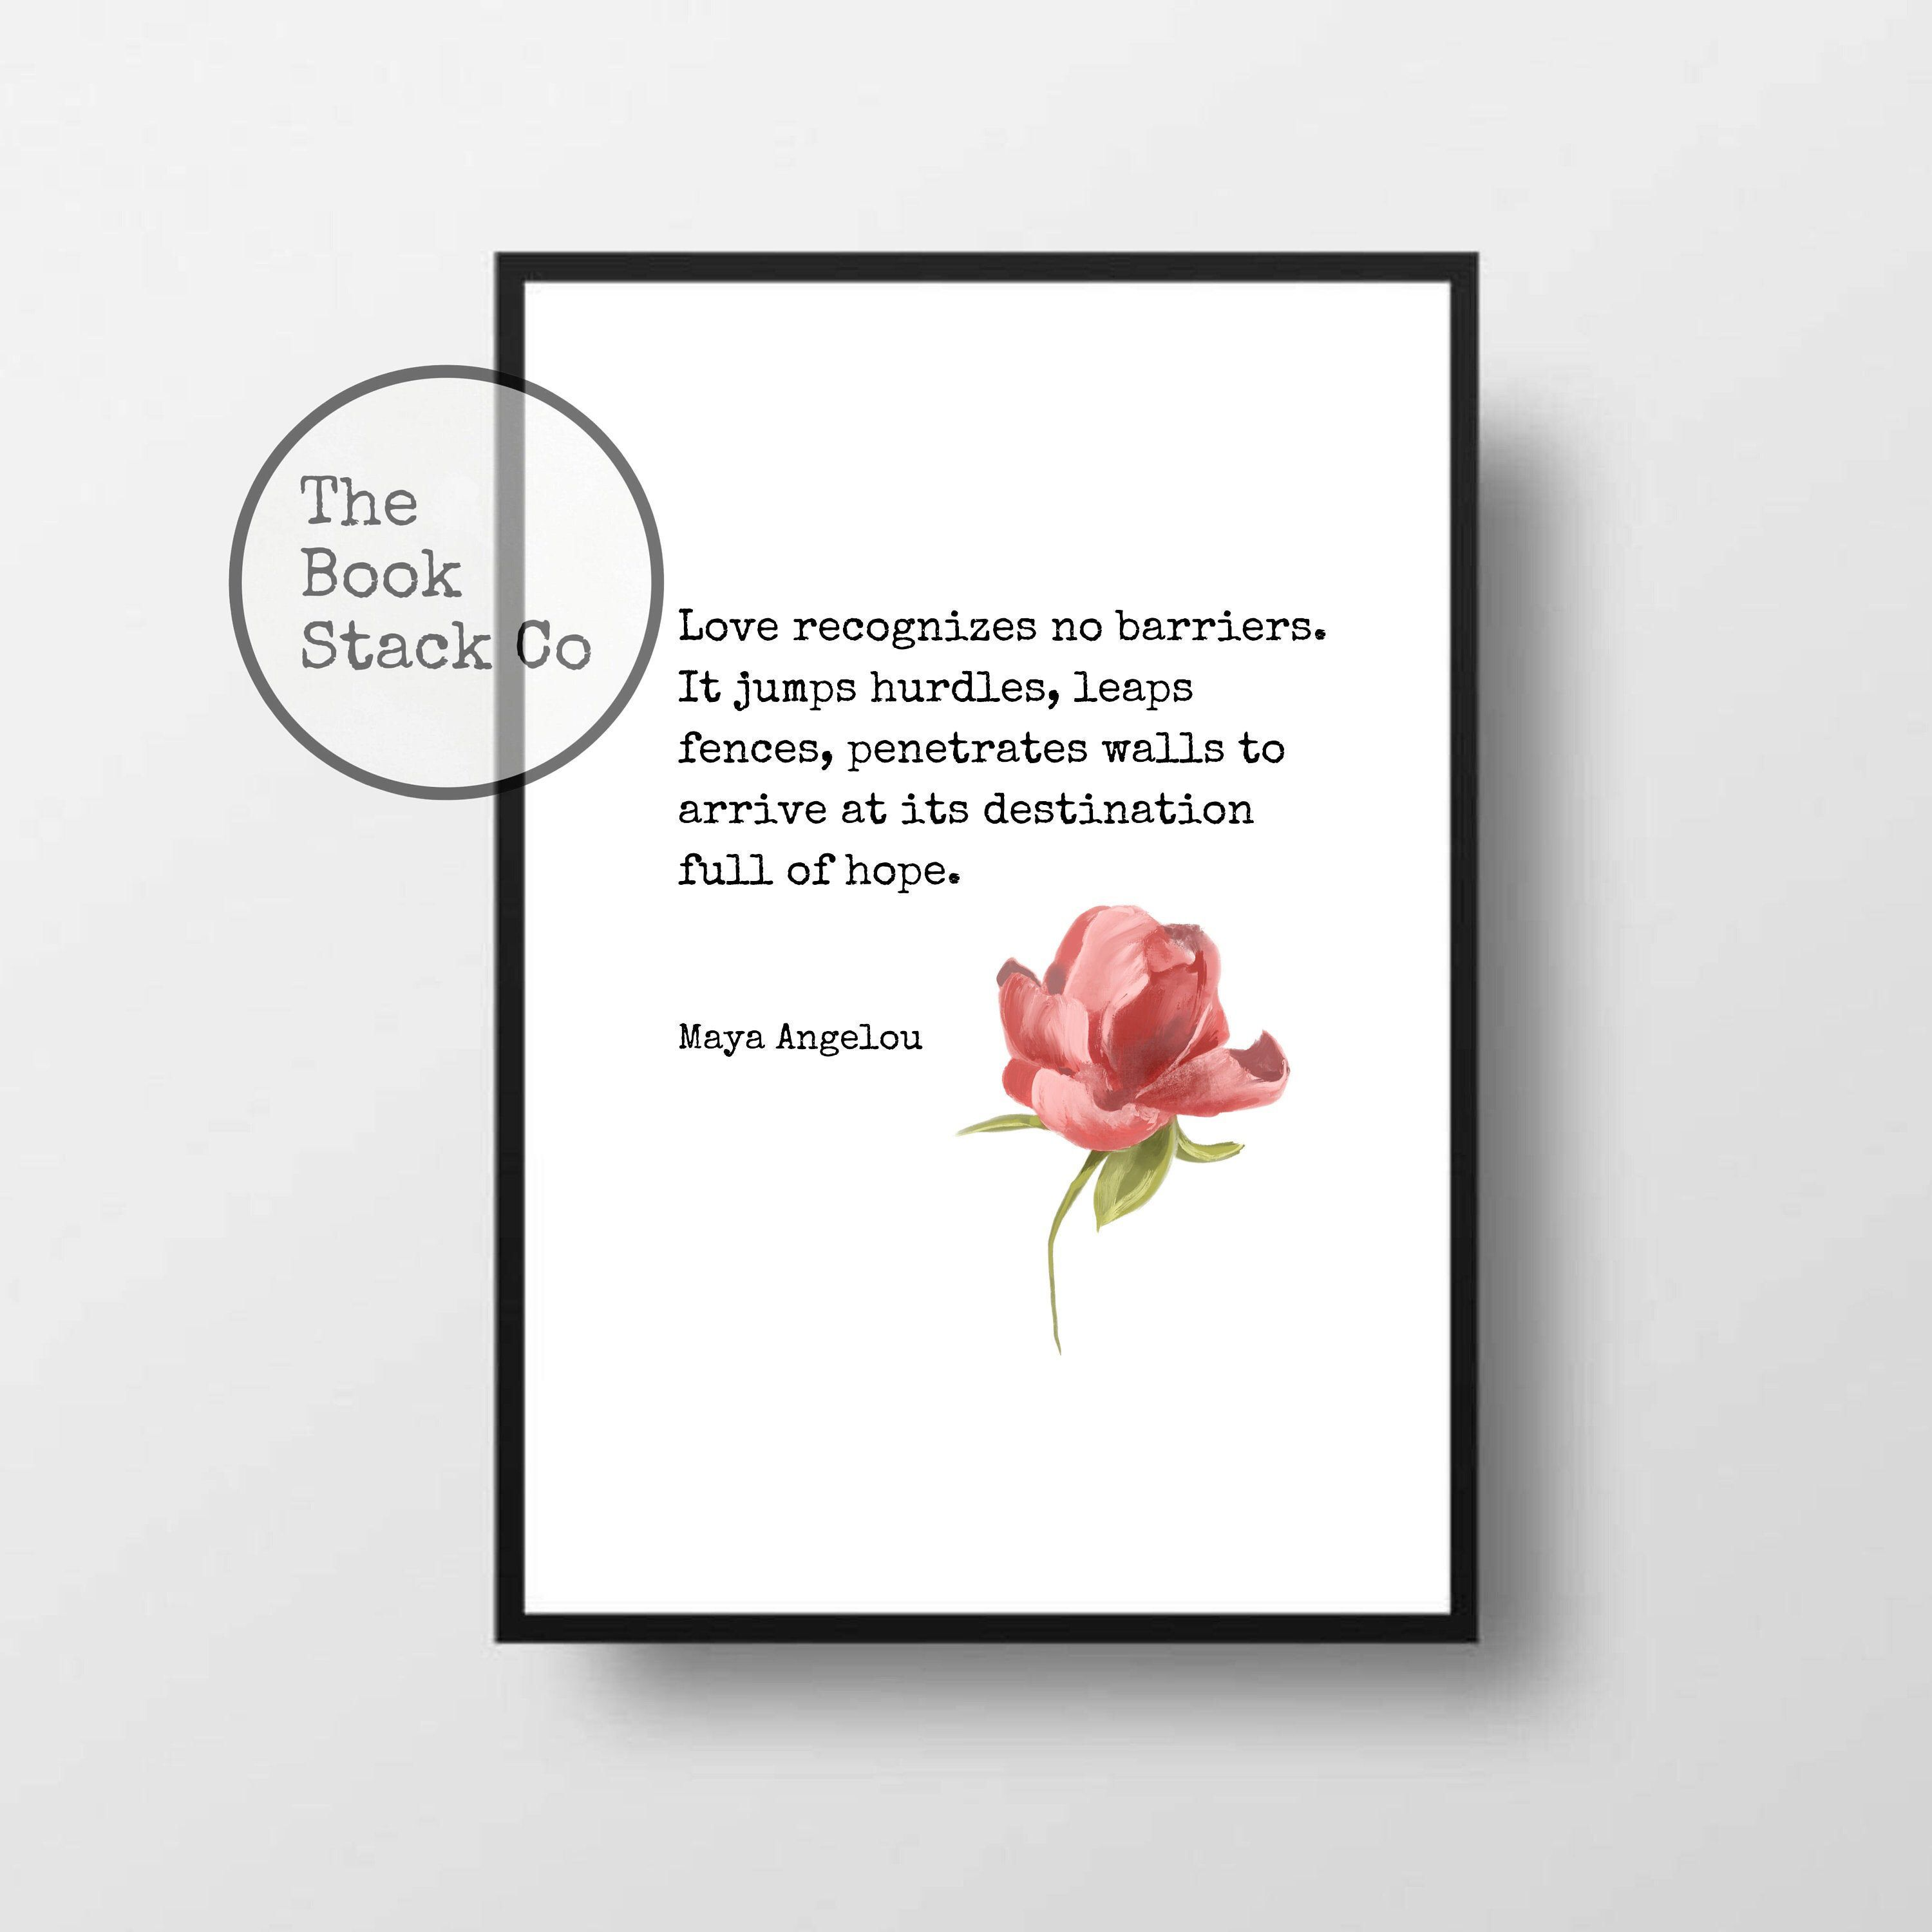 Maya Angelou Quote - Love Recognizes No Barriers, Typography Print, Literary Art, Change Quote, Minimalist Decor, Instant Digital Download - #- #Angelou #art #Barriers, #change #decor #Digital #Download #instant #Literary #love #maya #minimalist #no #print #quote #Recognizes #Typography